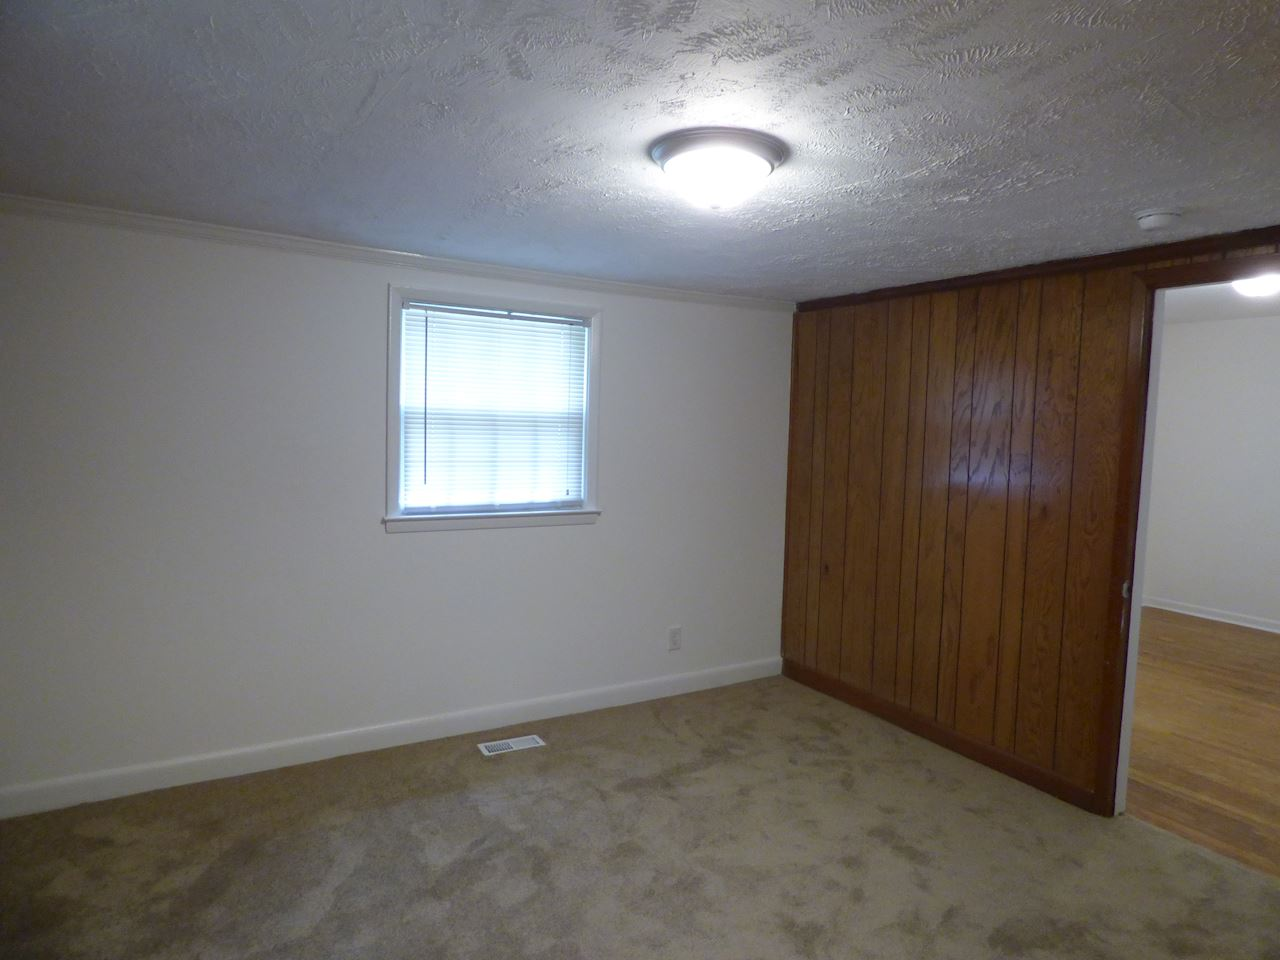 investment property - 1469 Thelbert Dr, Fayetteville, NC 28301, Cumberland - image 10